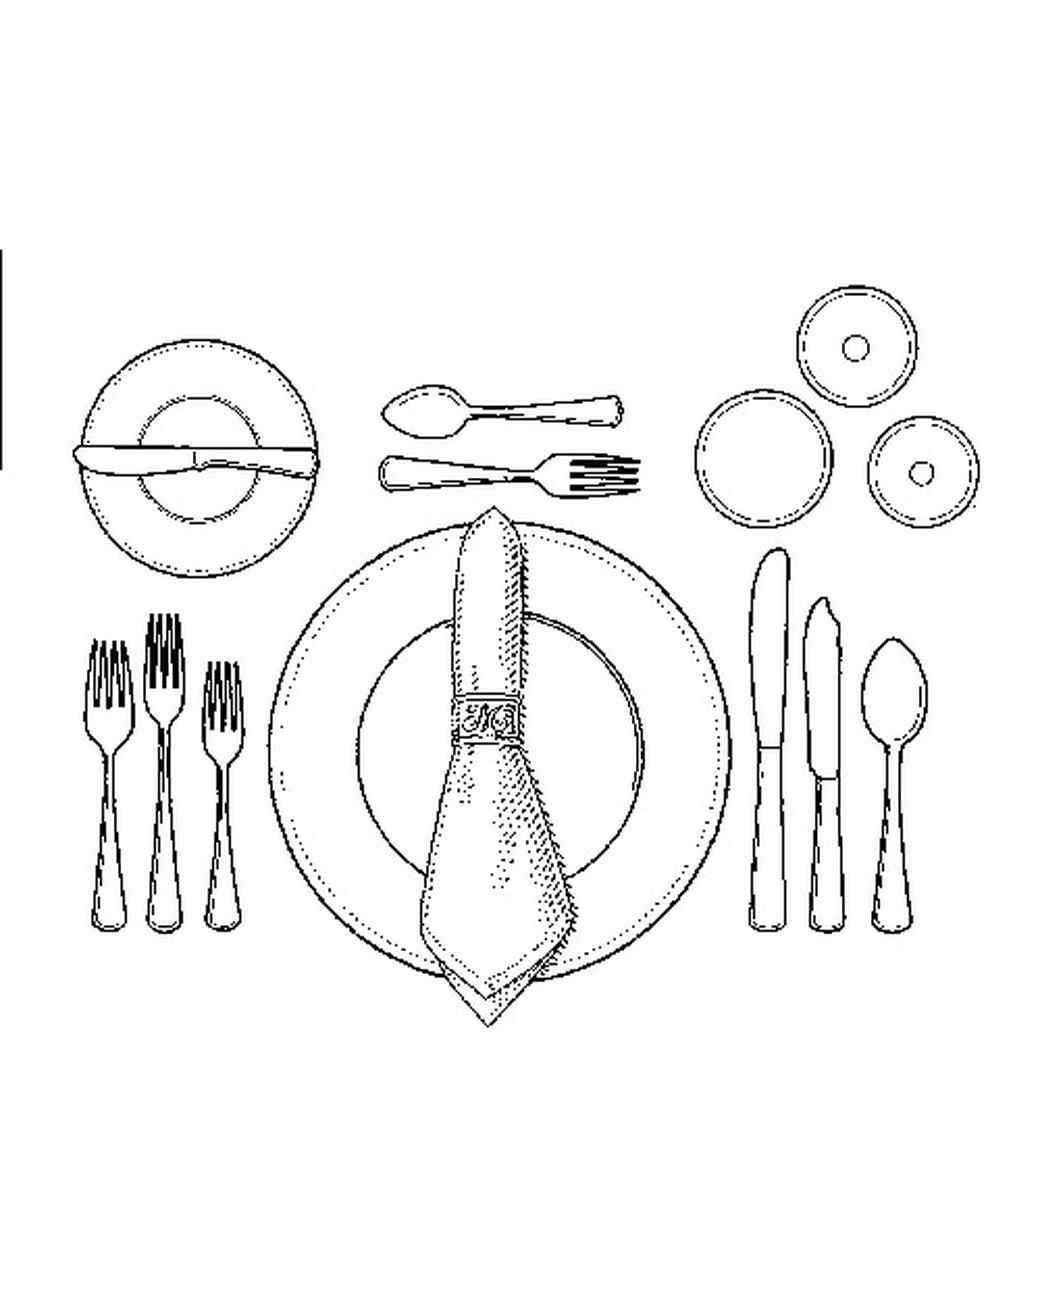 Formal dinner table setting etiquette - Before The First Course Once You Realize Table Setting